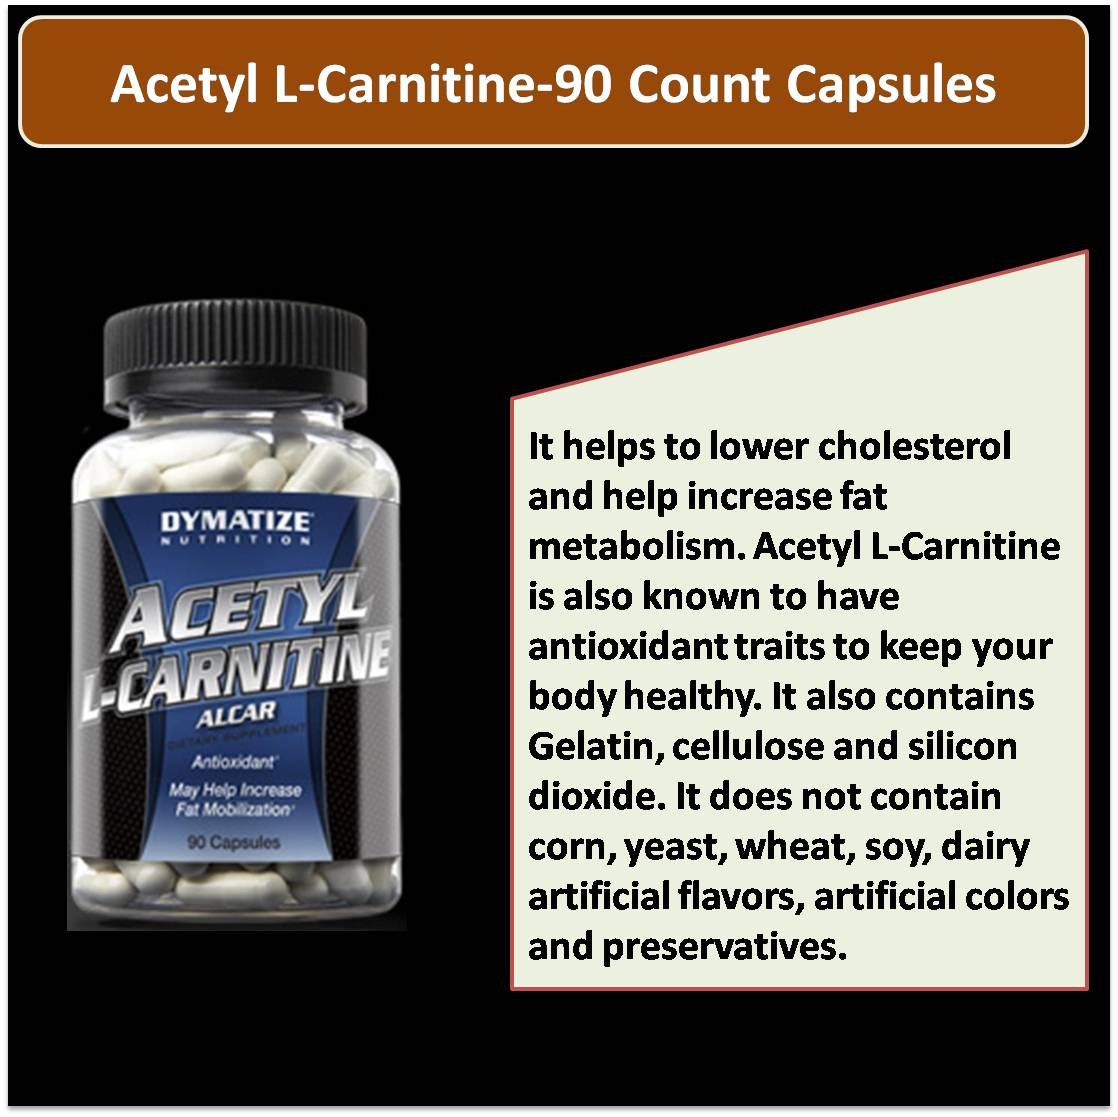 Acetyl L-Carnitine-90 Count Capsules